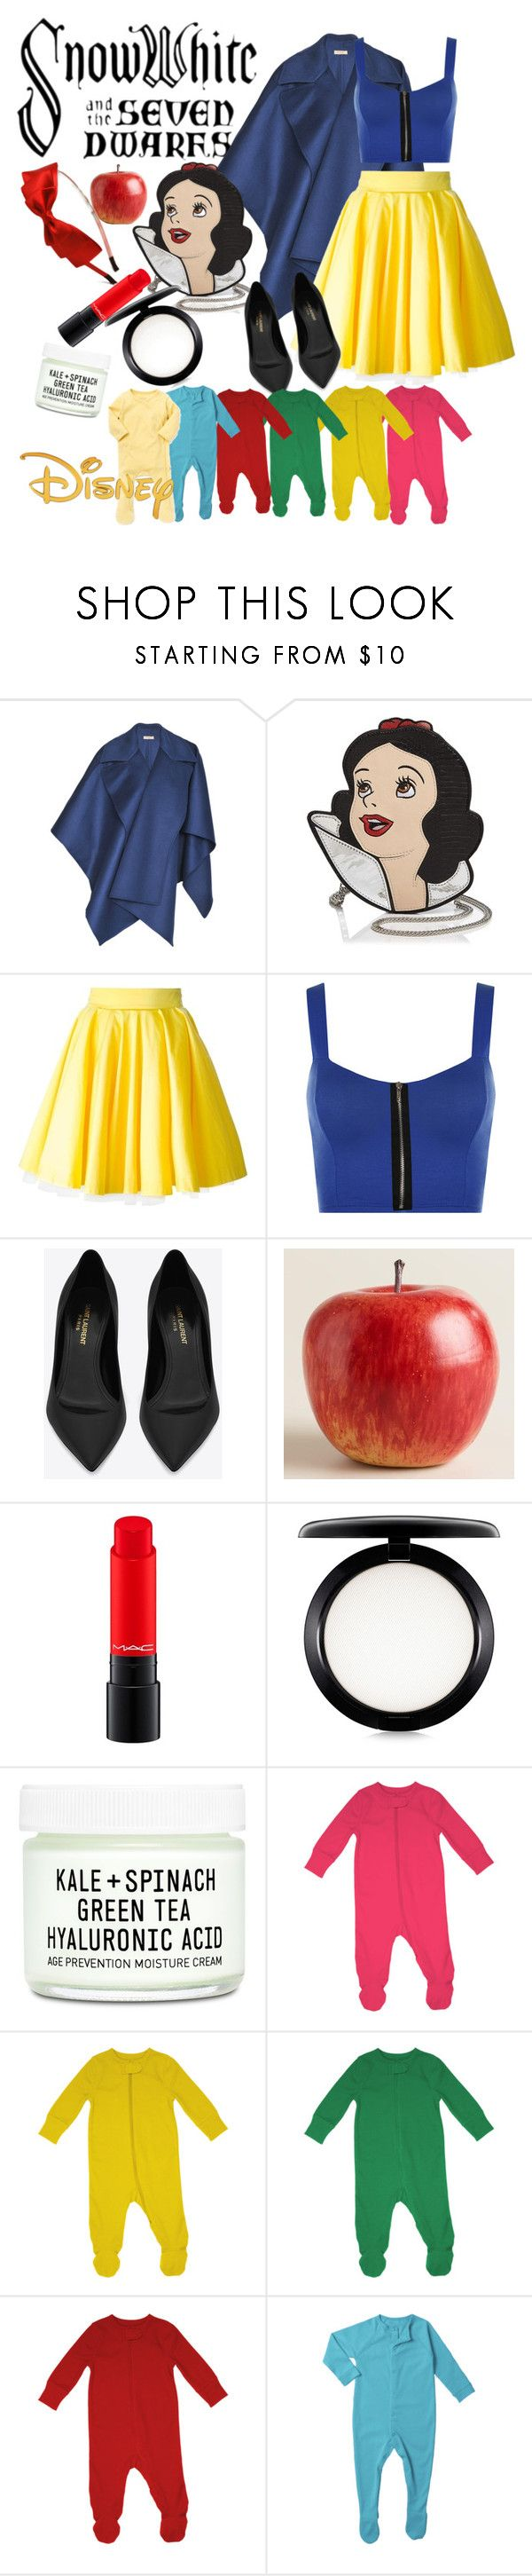 """""""SnowWhite"""" by shtrausgaus ❤ liked on Polyvore featuring Hayley Menzies, Danielle Nicole, Philipp Plein, WearAll, Yves Saint Laurent, Cost Plus World Market, MAC Cosmetics, Youth To The People and Disney"""